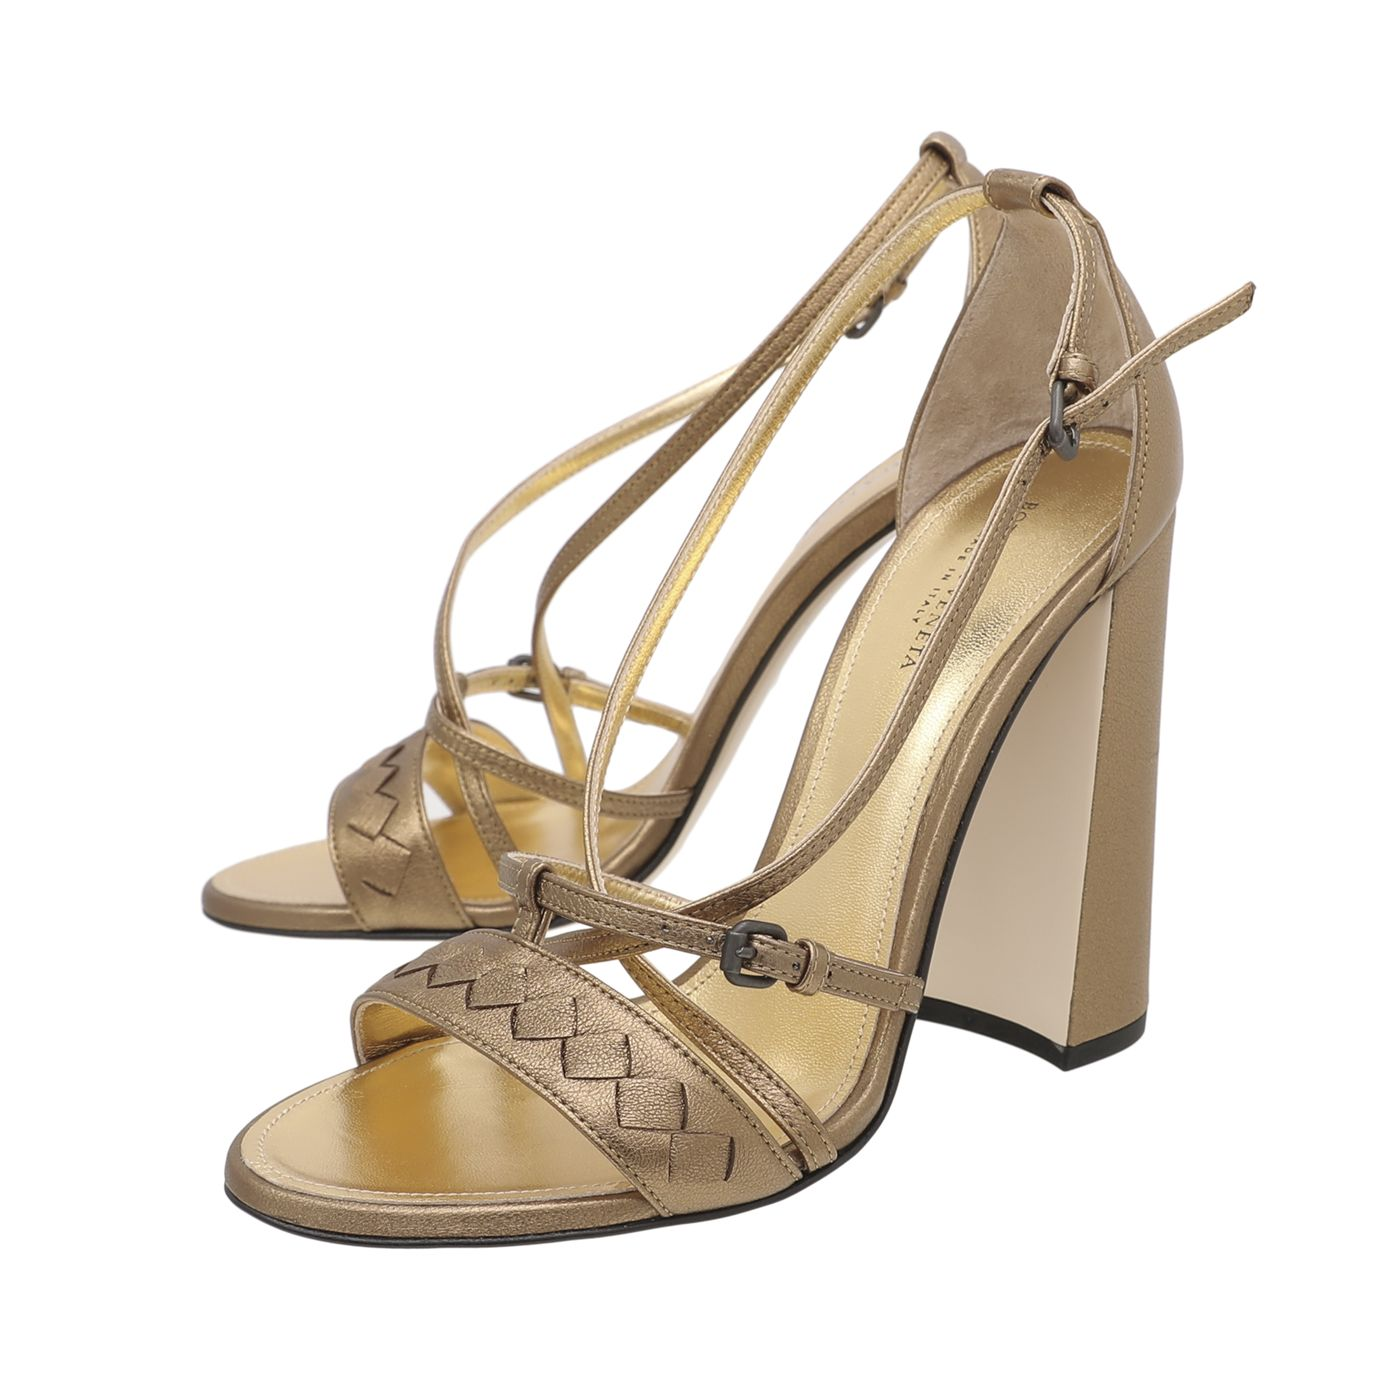 Bottega Veneta Metallic Gold Cross Strap Sandals 115mm 38